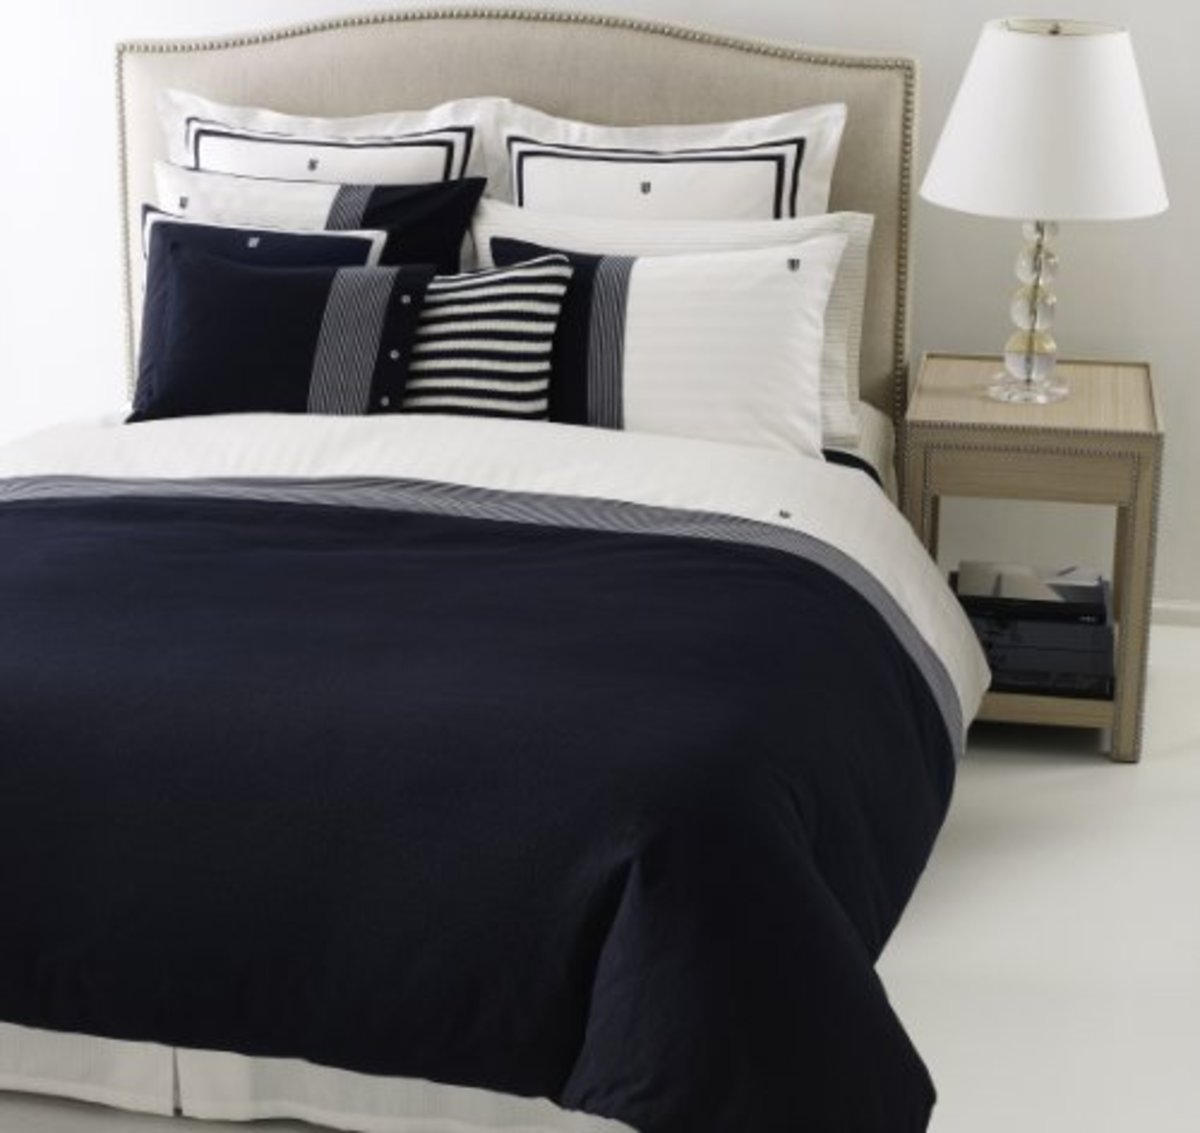 Crisp and clean navy and white makes us all think of summer and the beach. It is a wonderful combination for a casual interior design, and mixes well with dark woods or white glazes.